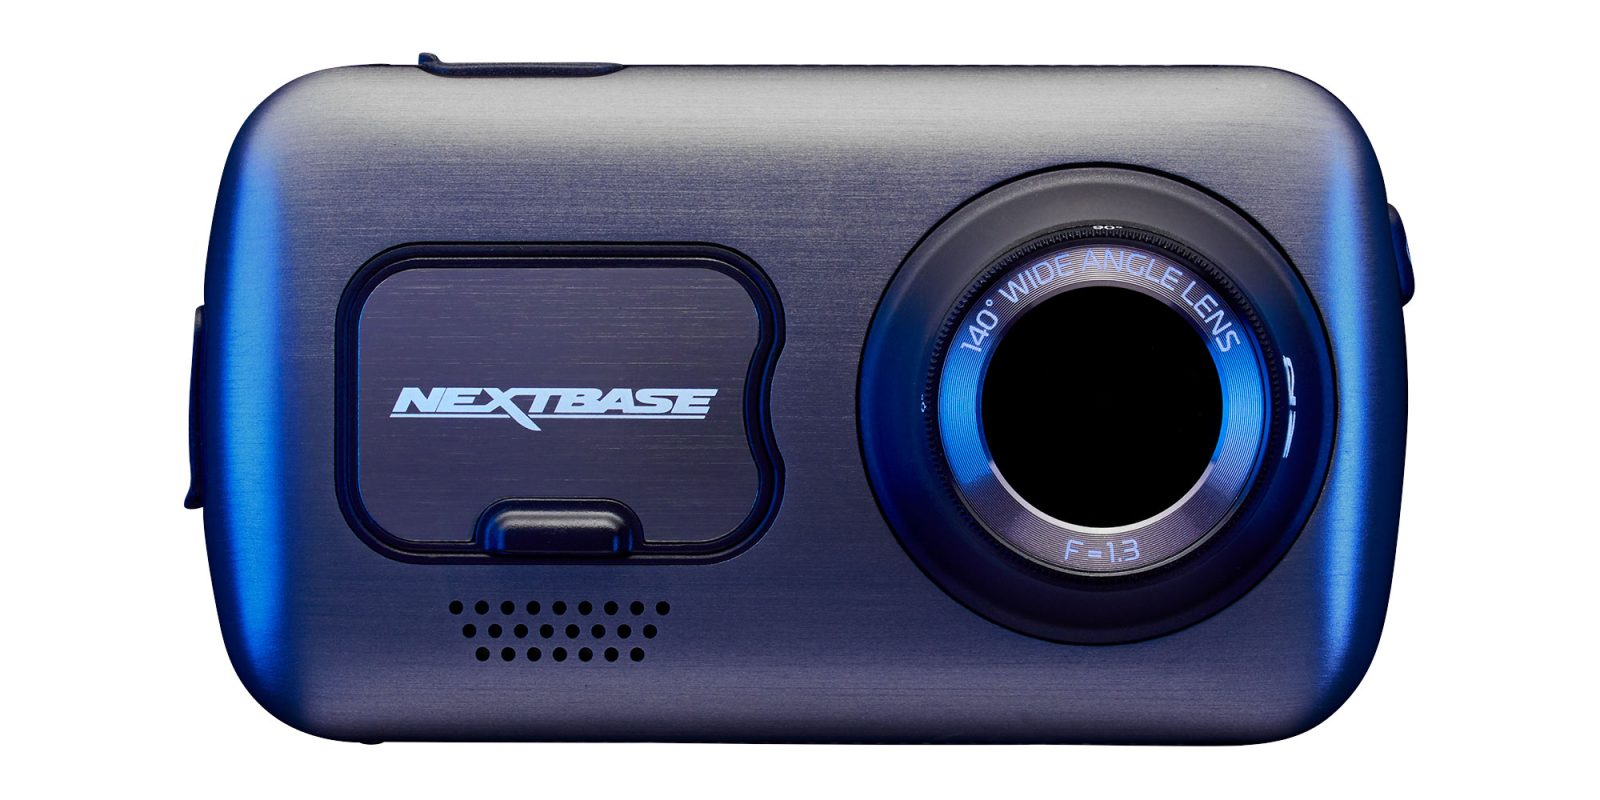 Nextbase's latest dash cam offers 'world firsts' including image stabilization